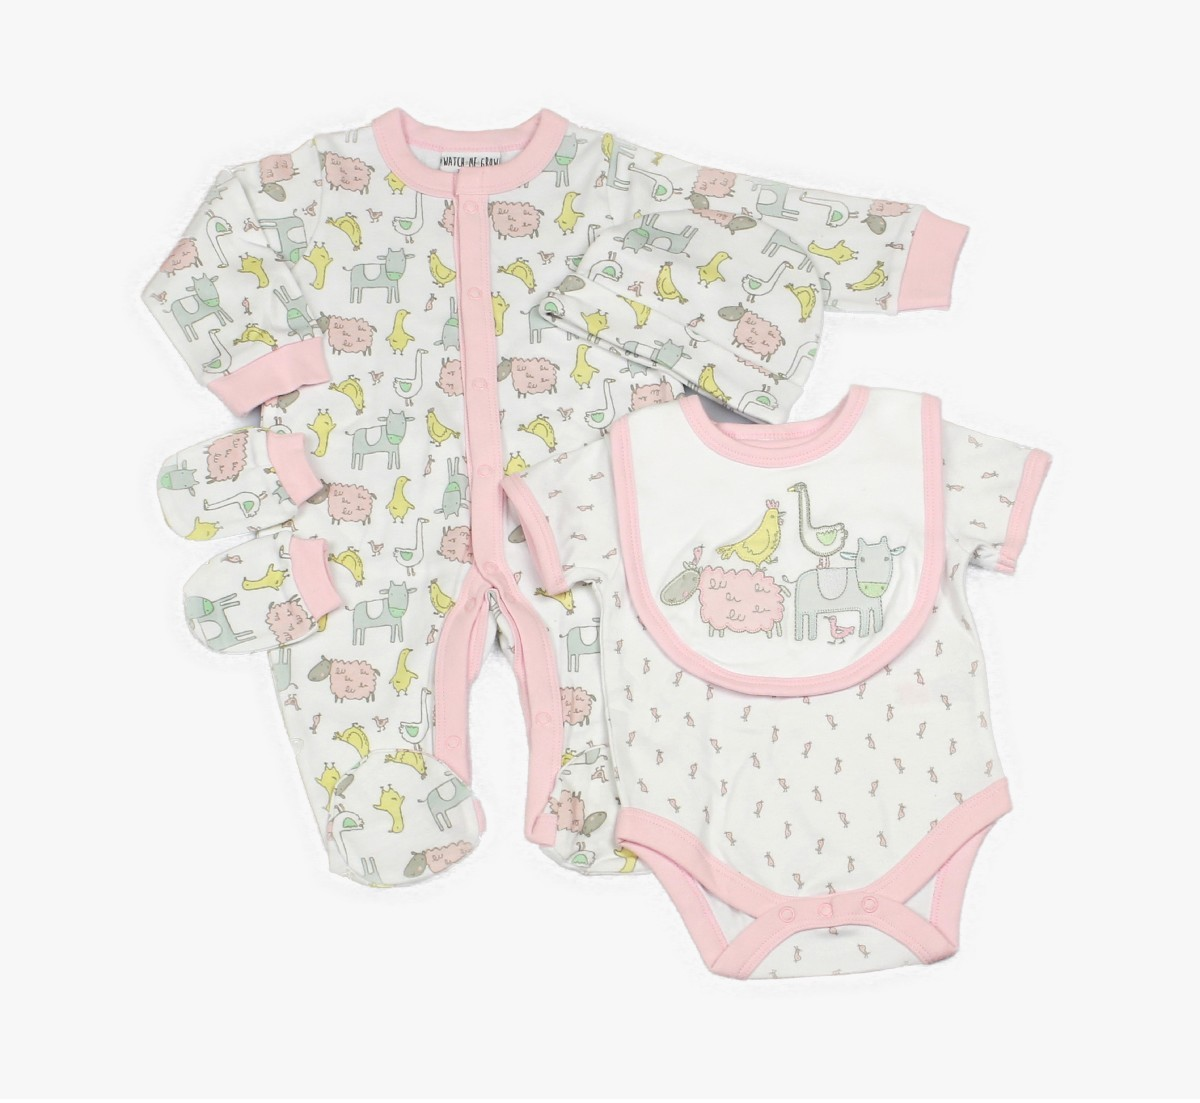 Baby 5pc Layette Gift Set - Sleepsuit, Bodysuit, Bib, Cap And Mitts